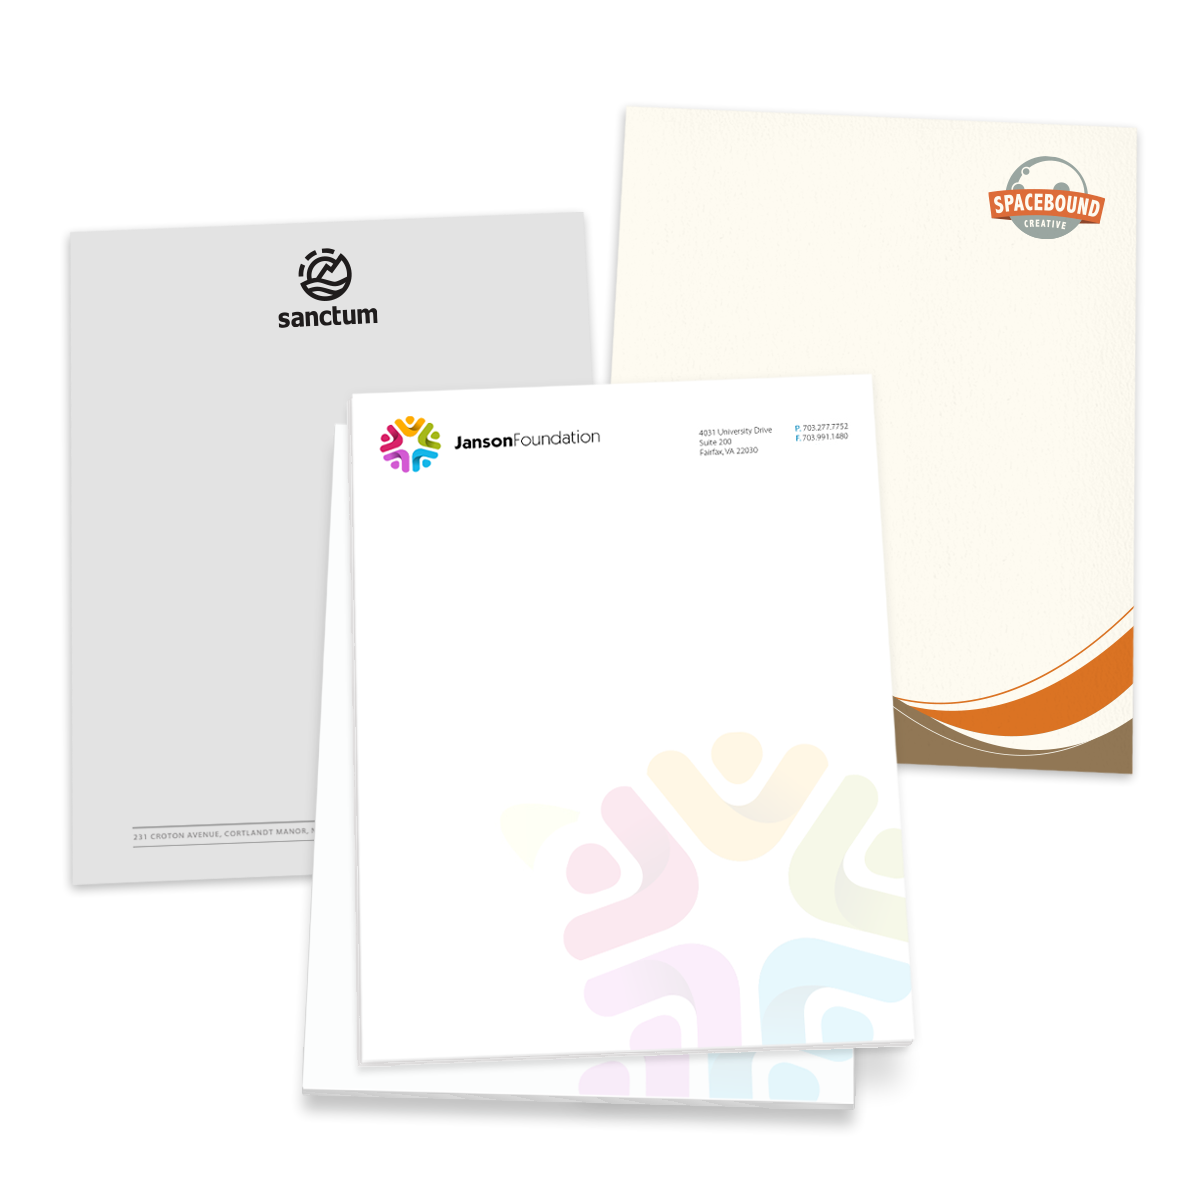 picture of stationery letterhead